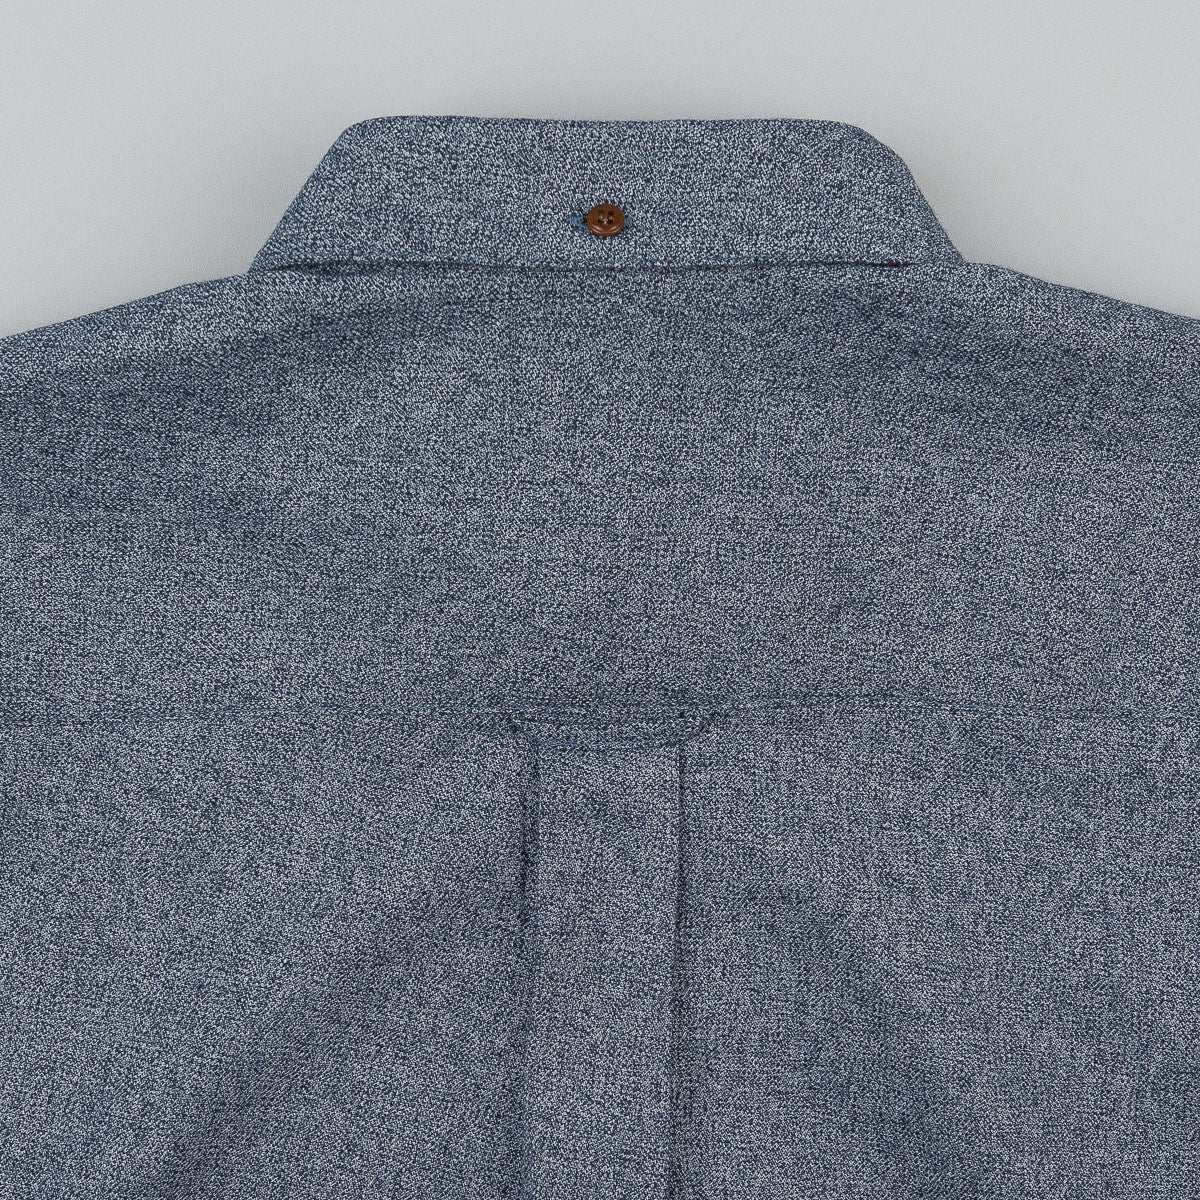 Carhartt Cram Long Sleeve Shirt - Navy